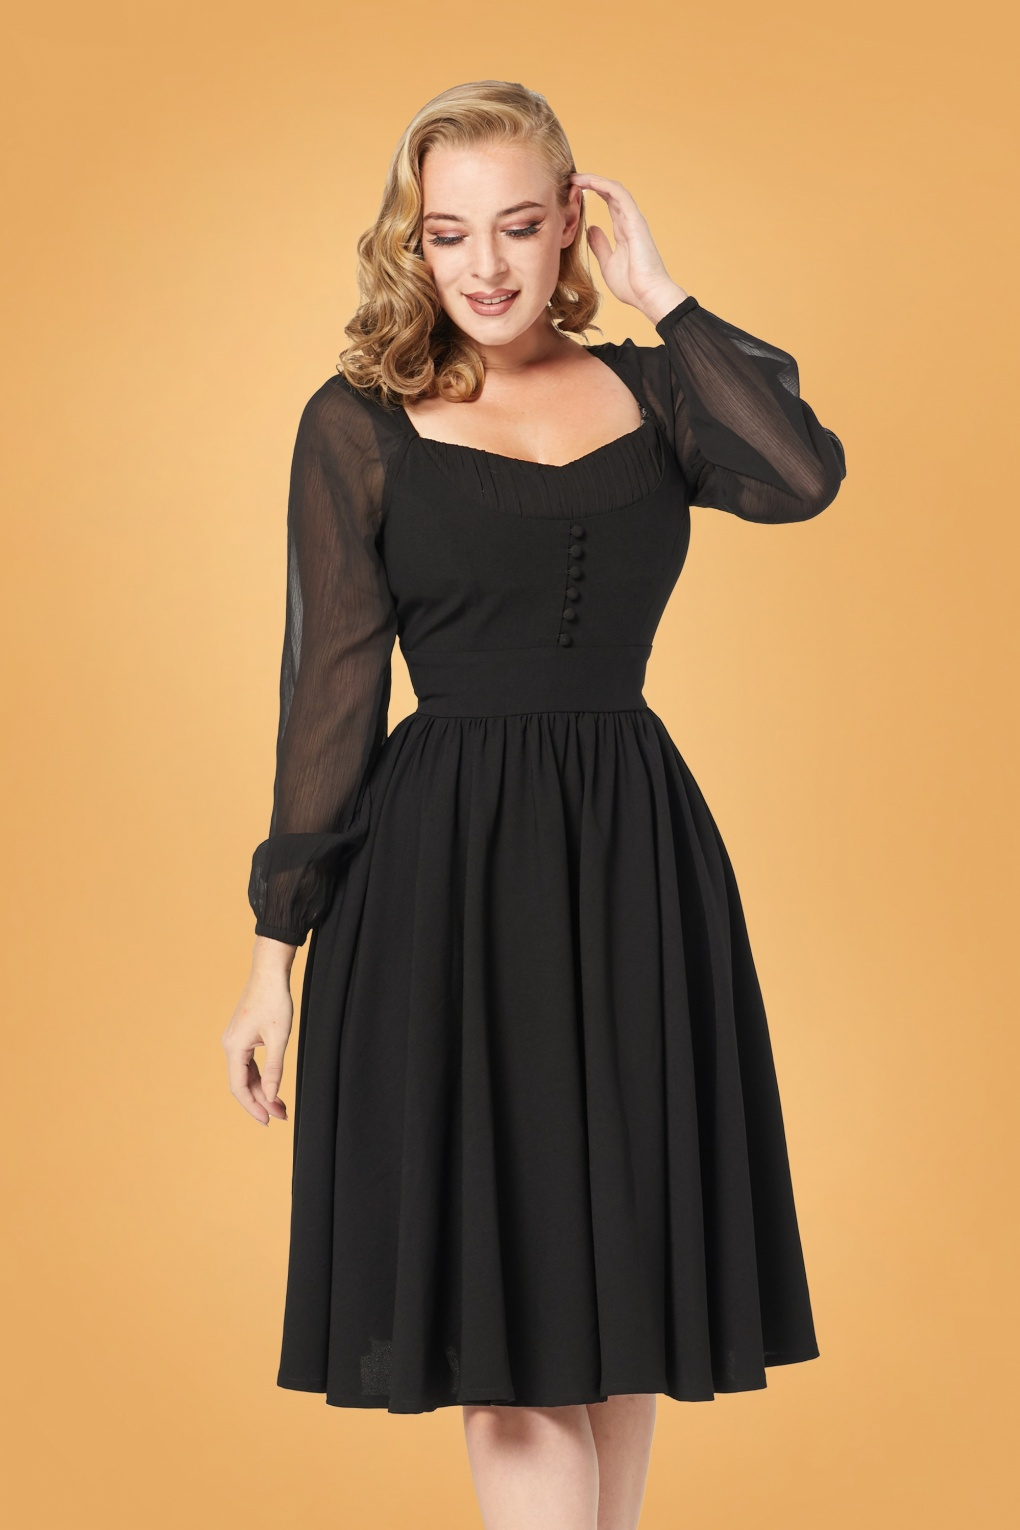 What Did Women Wear in the 1950s? 1950s Fashion Guide 50s Dion Swing Dress in Black £71.07 AT vintagedancer.com